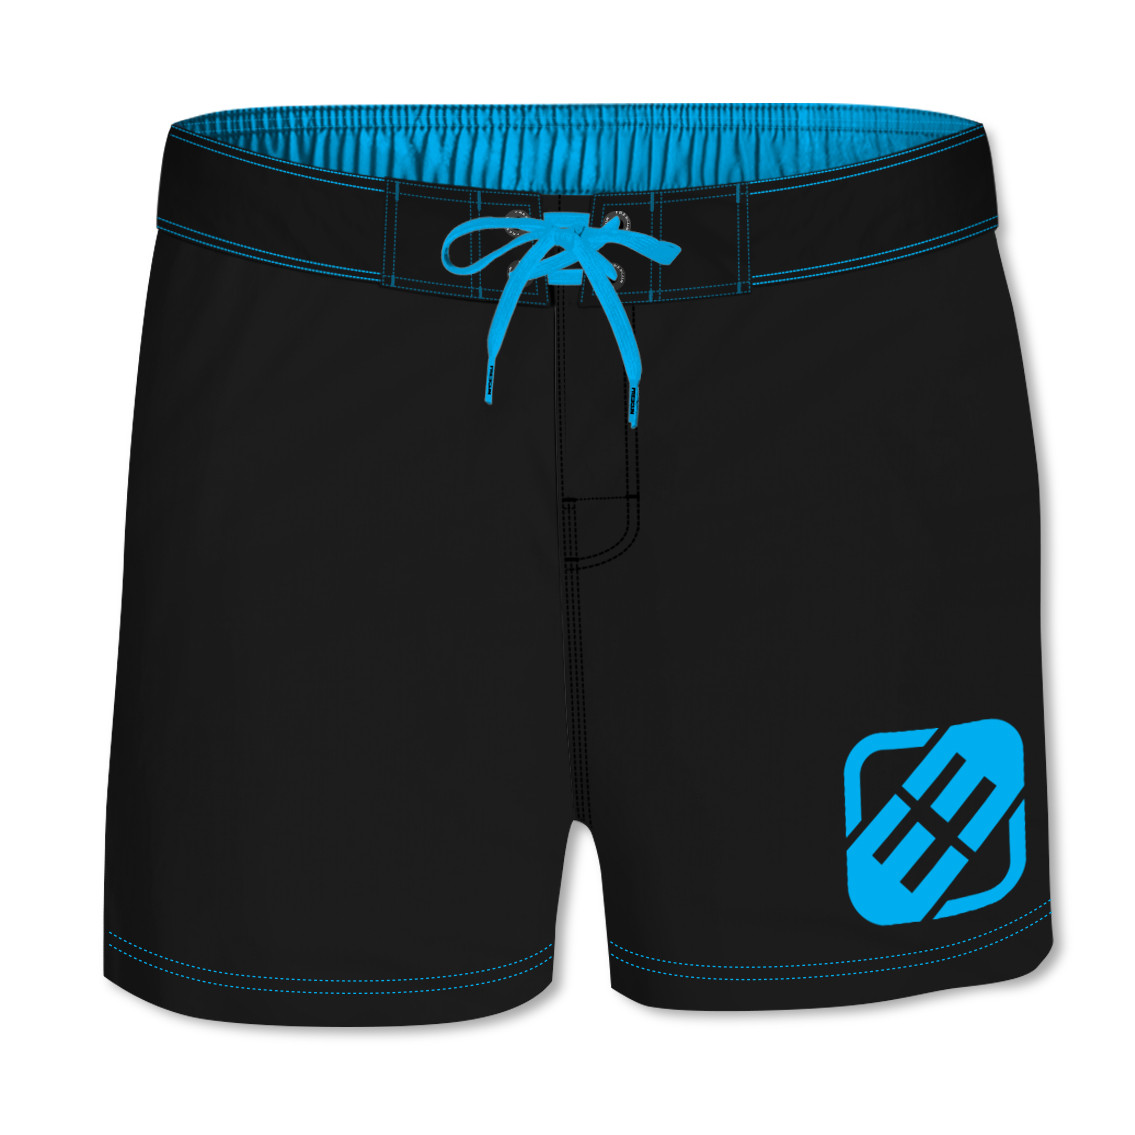 Boardshort court garçon freegun uni bleu (photo)